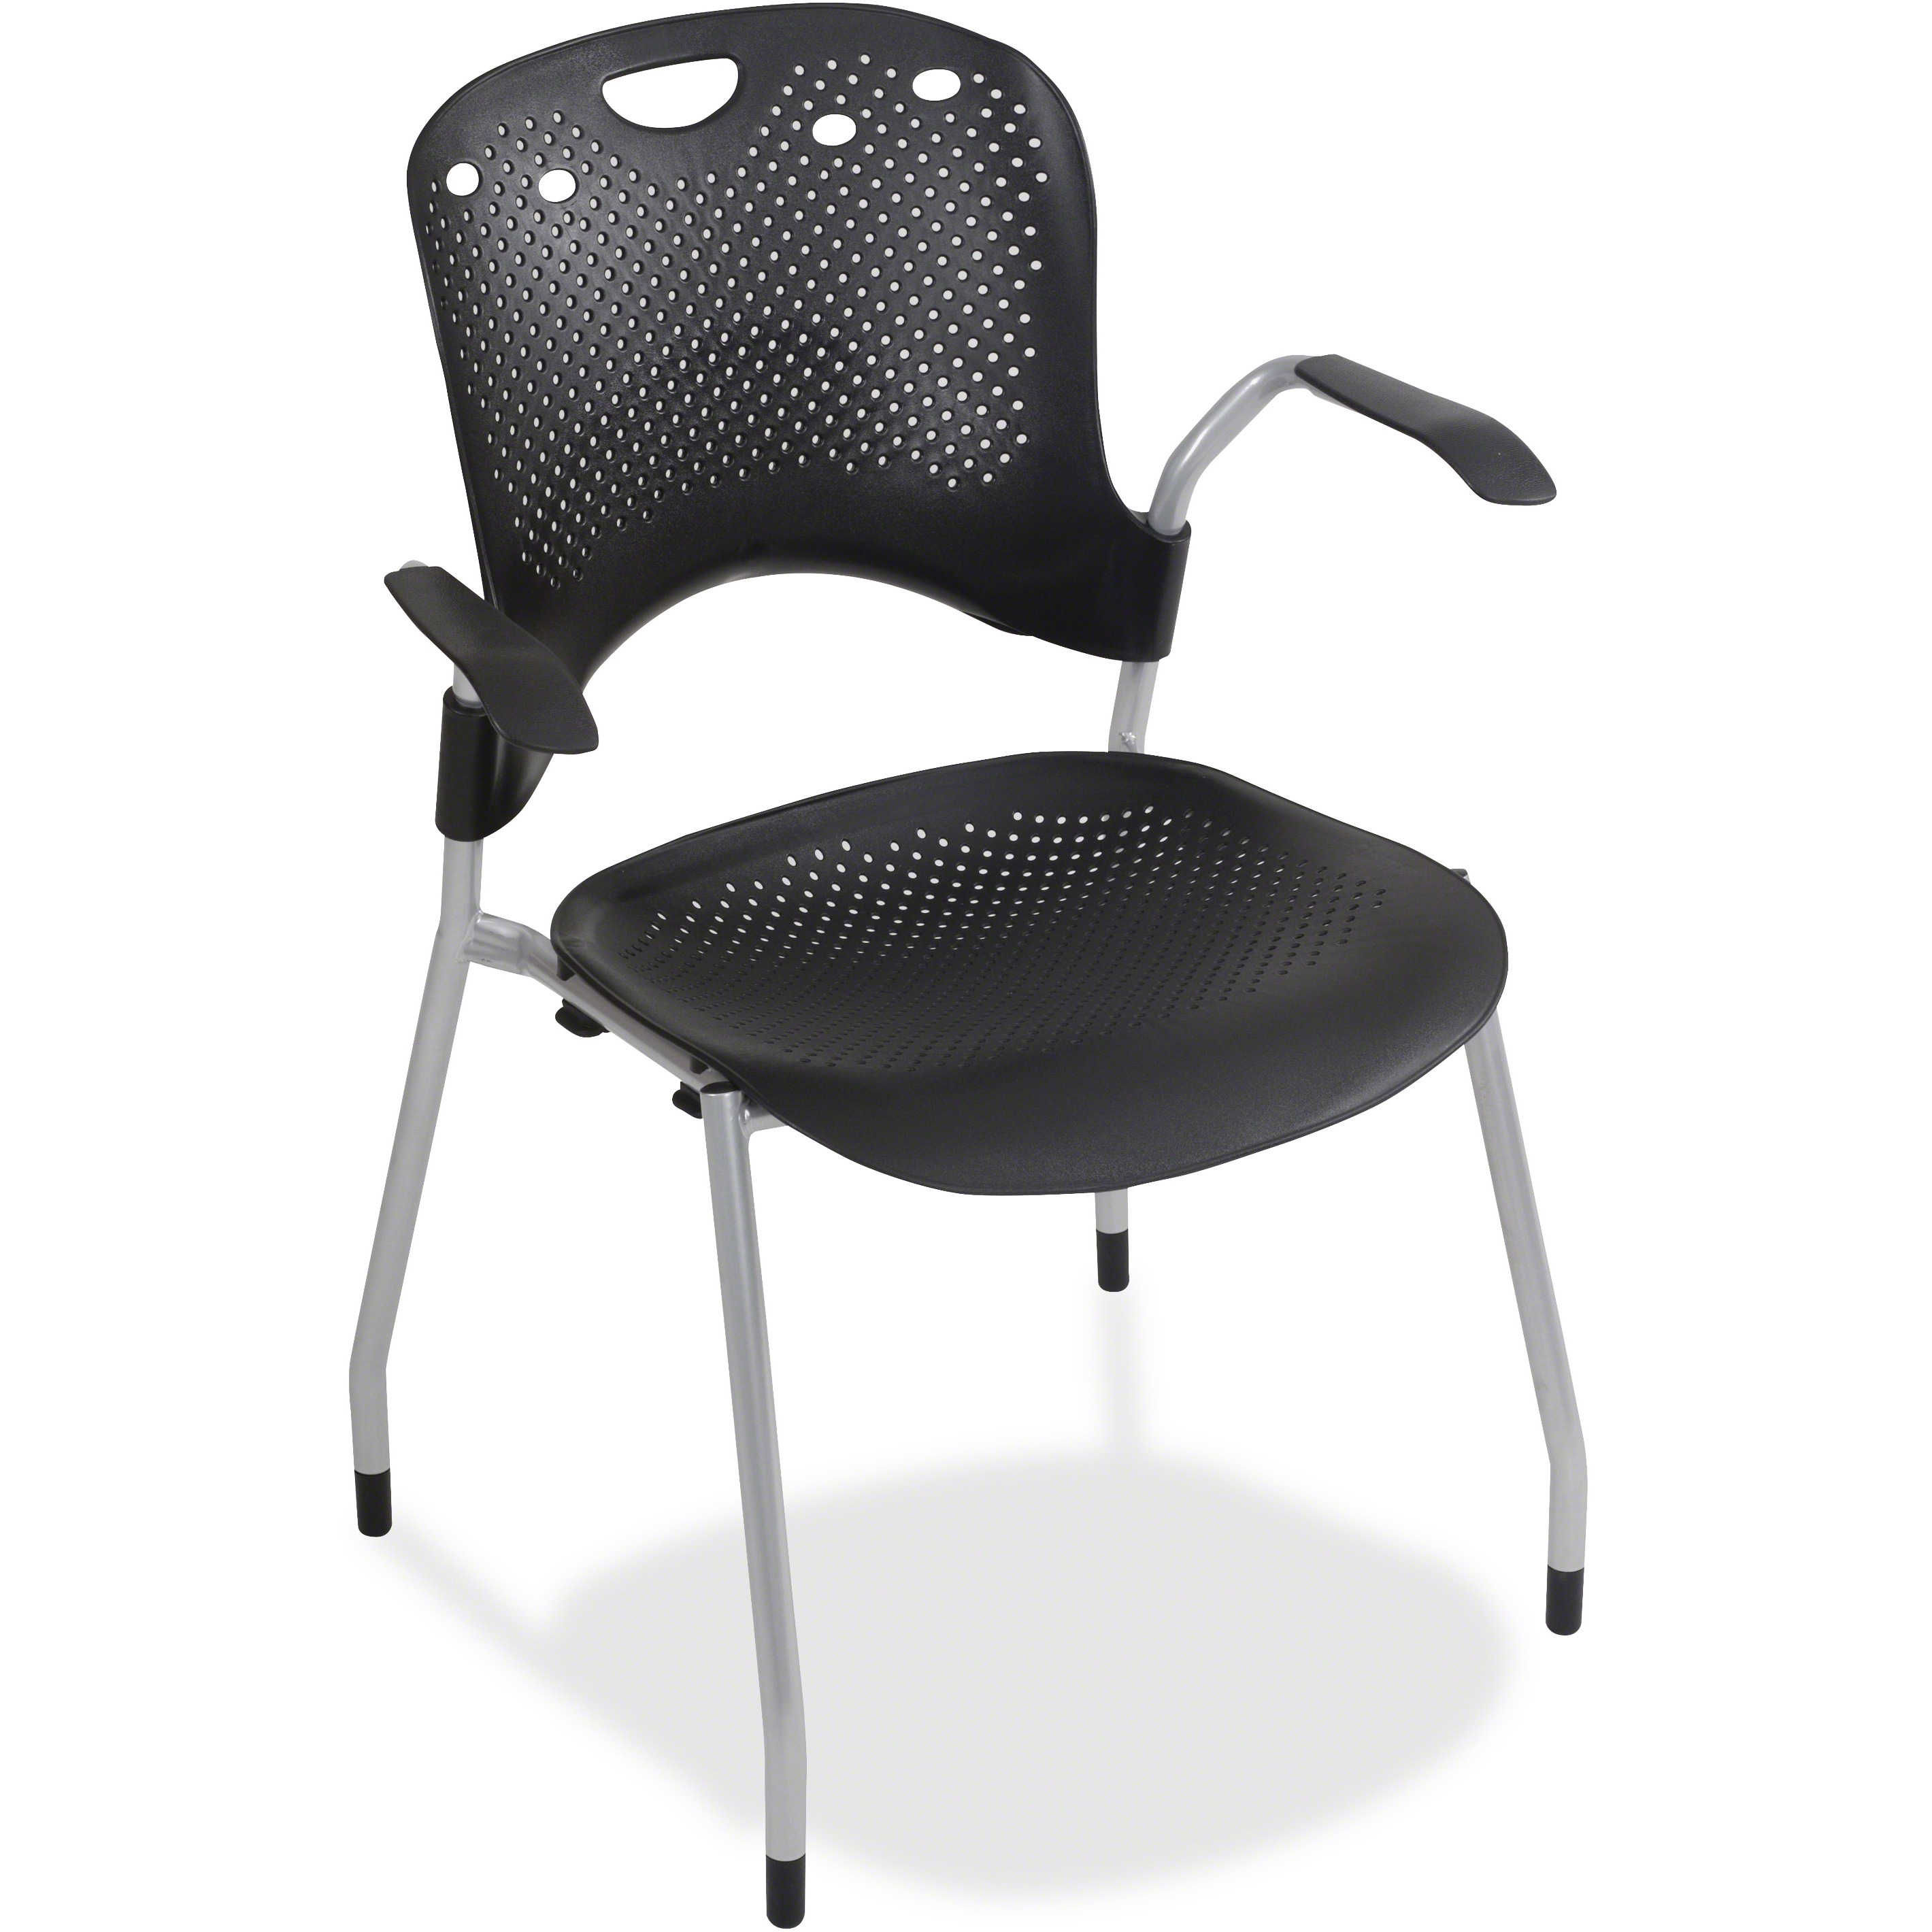 BALT Optional Arms for Circulation Series Seating, Black/Silver